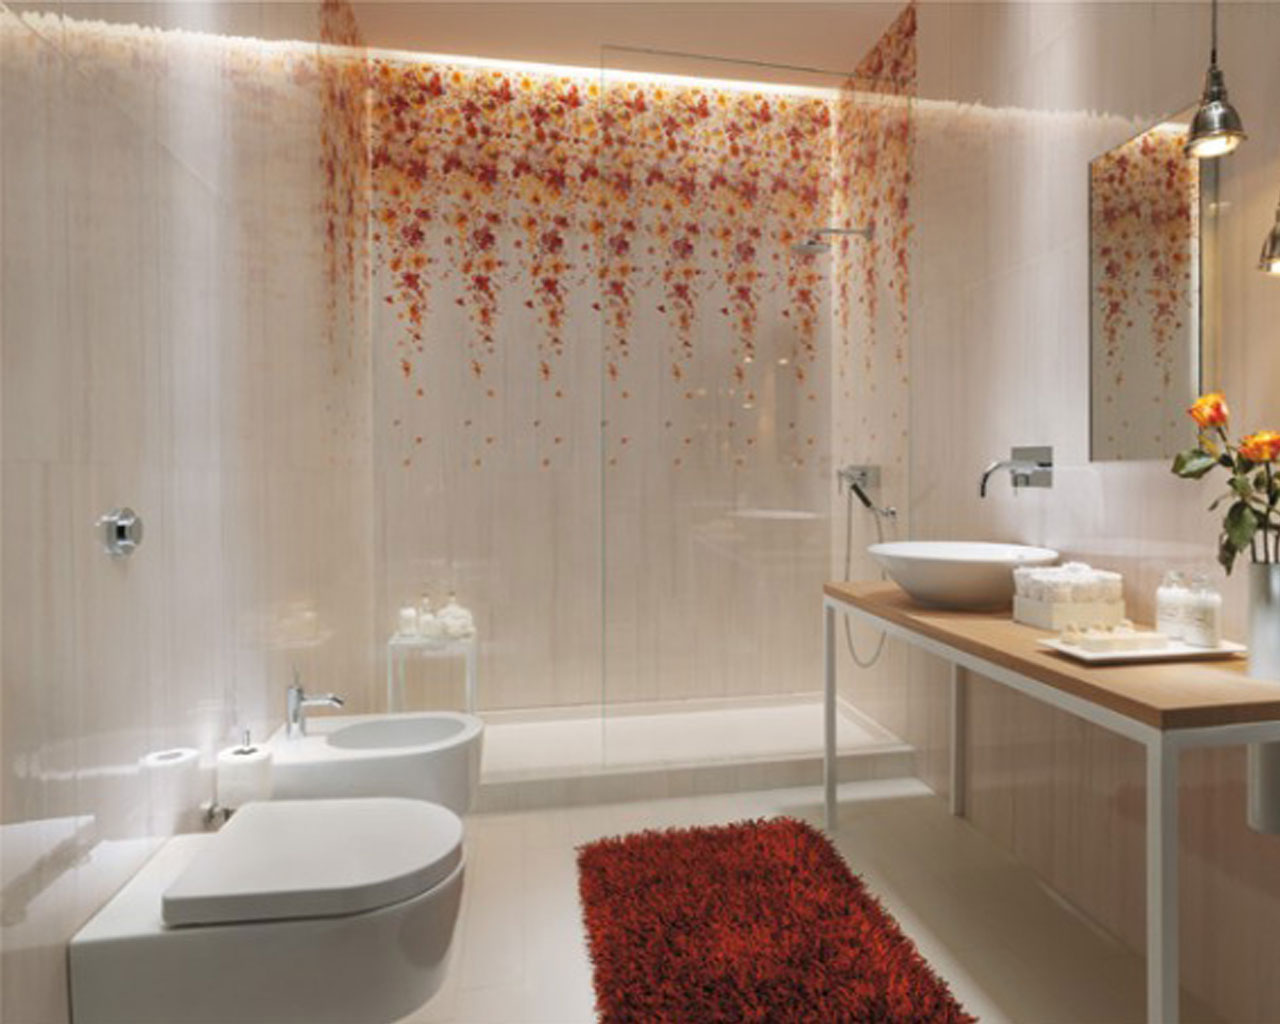 Strange 30 Nice Pictures And Ideas Beautiful Bathroom Wall Tiles Largest Home Design Picture Inspirations Pitcheantrous